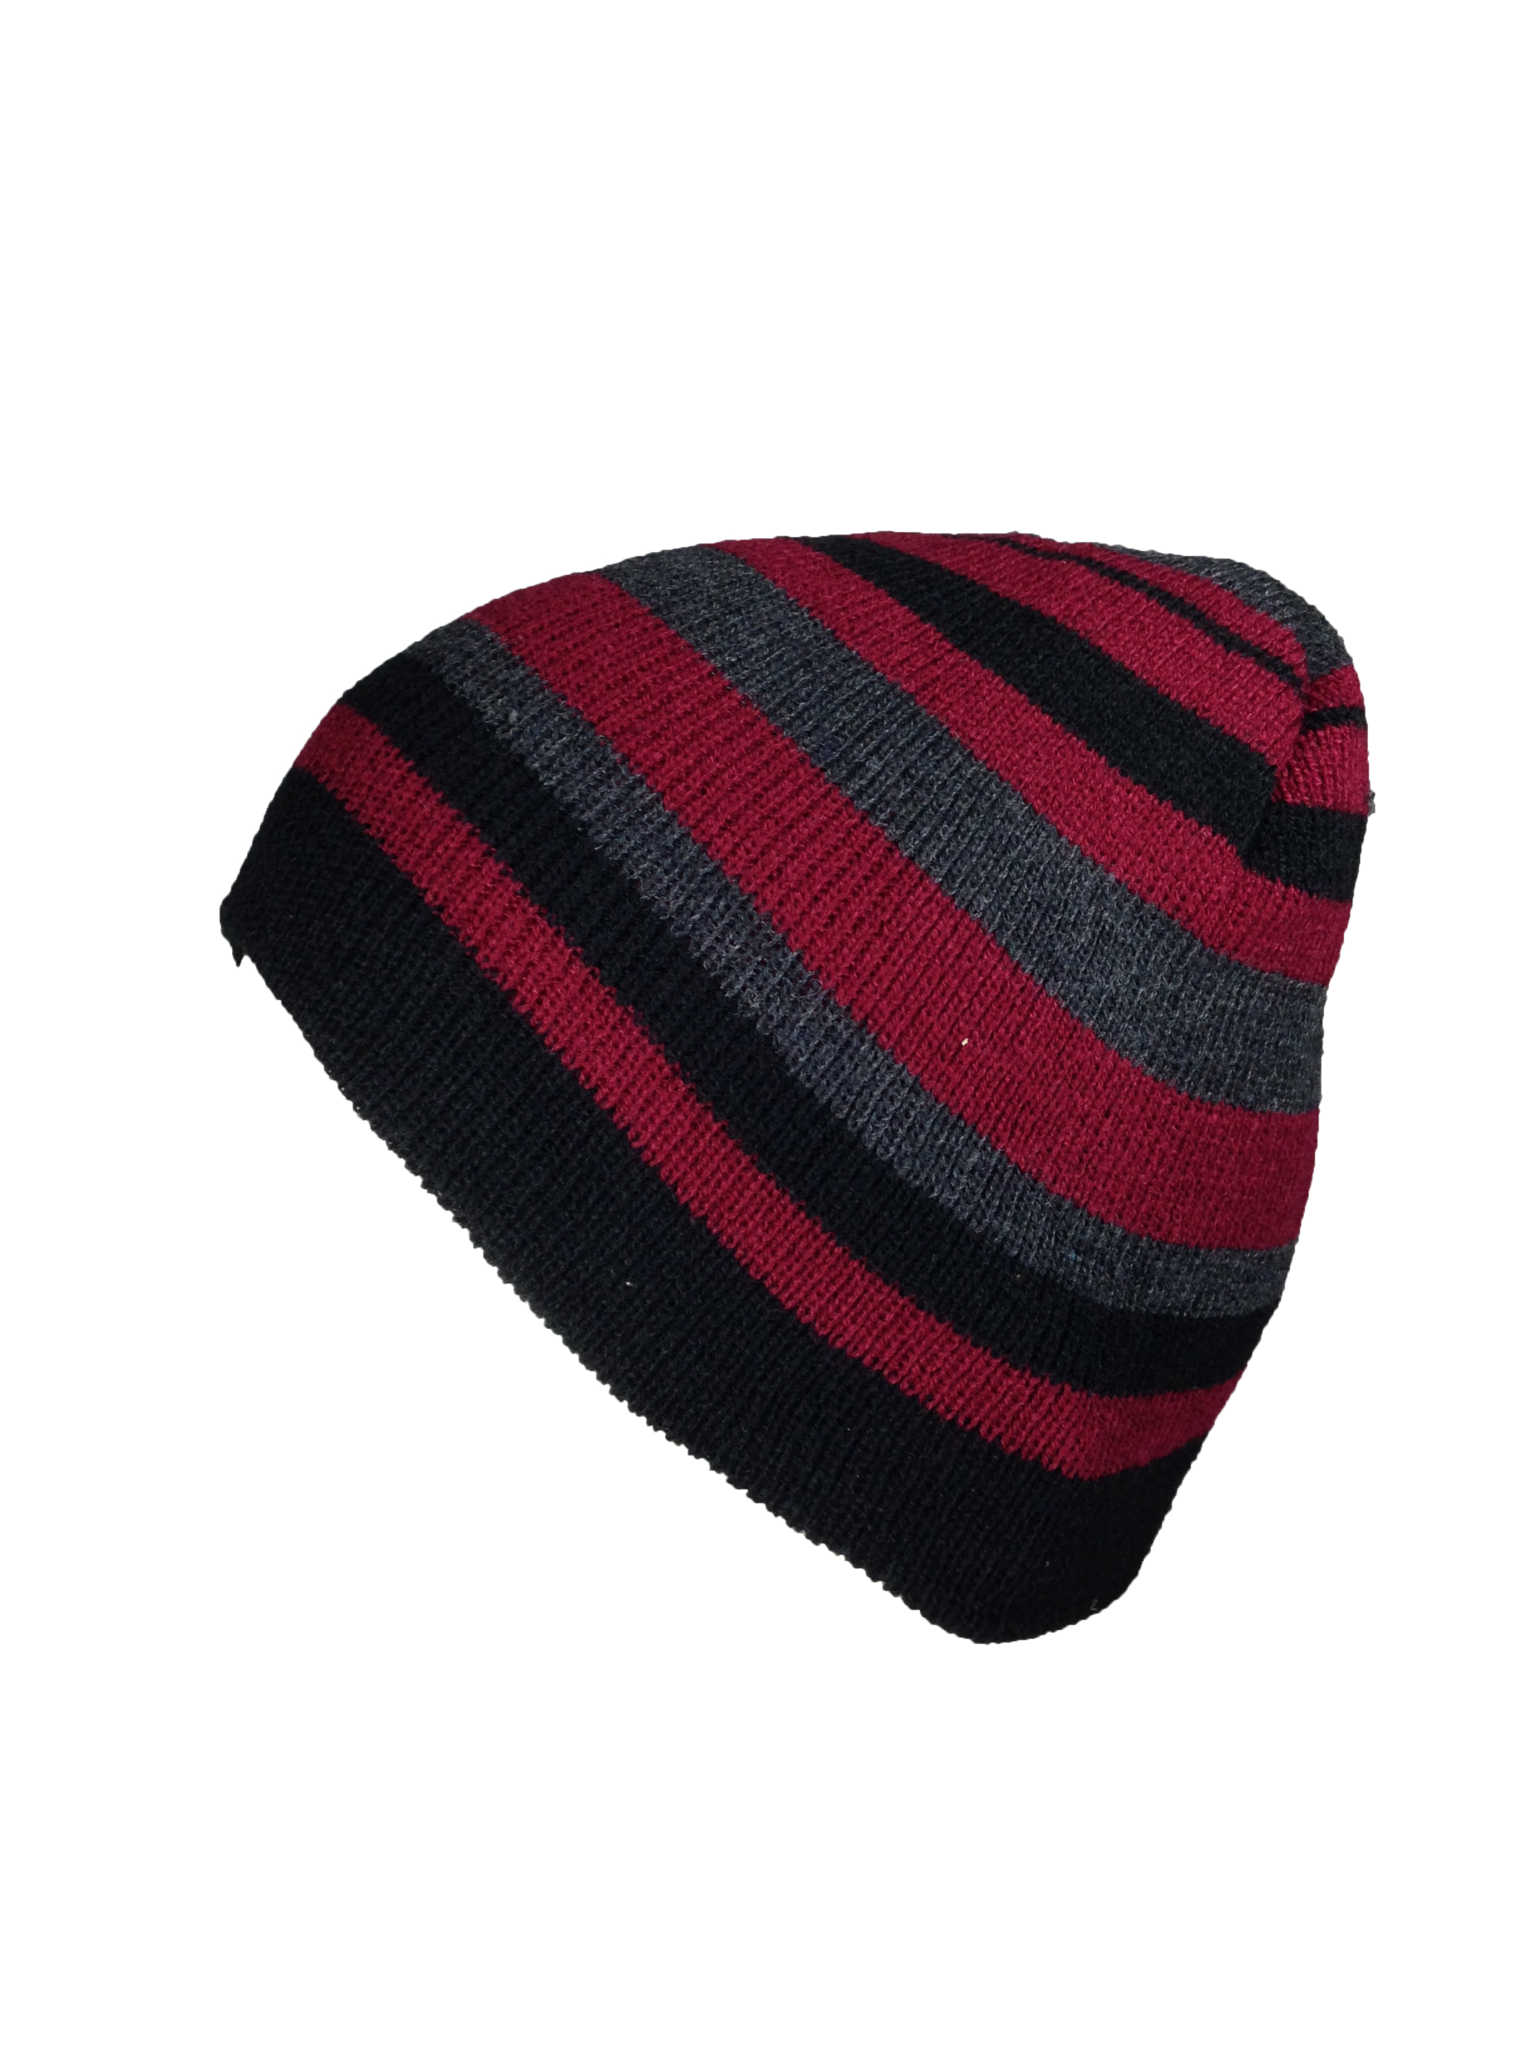 Red beanie hat png. Winter hats men s